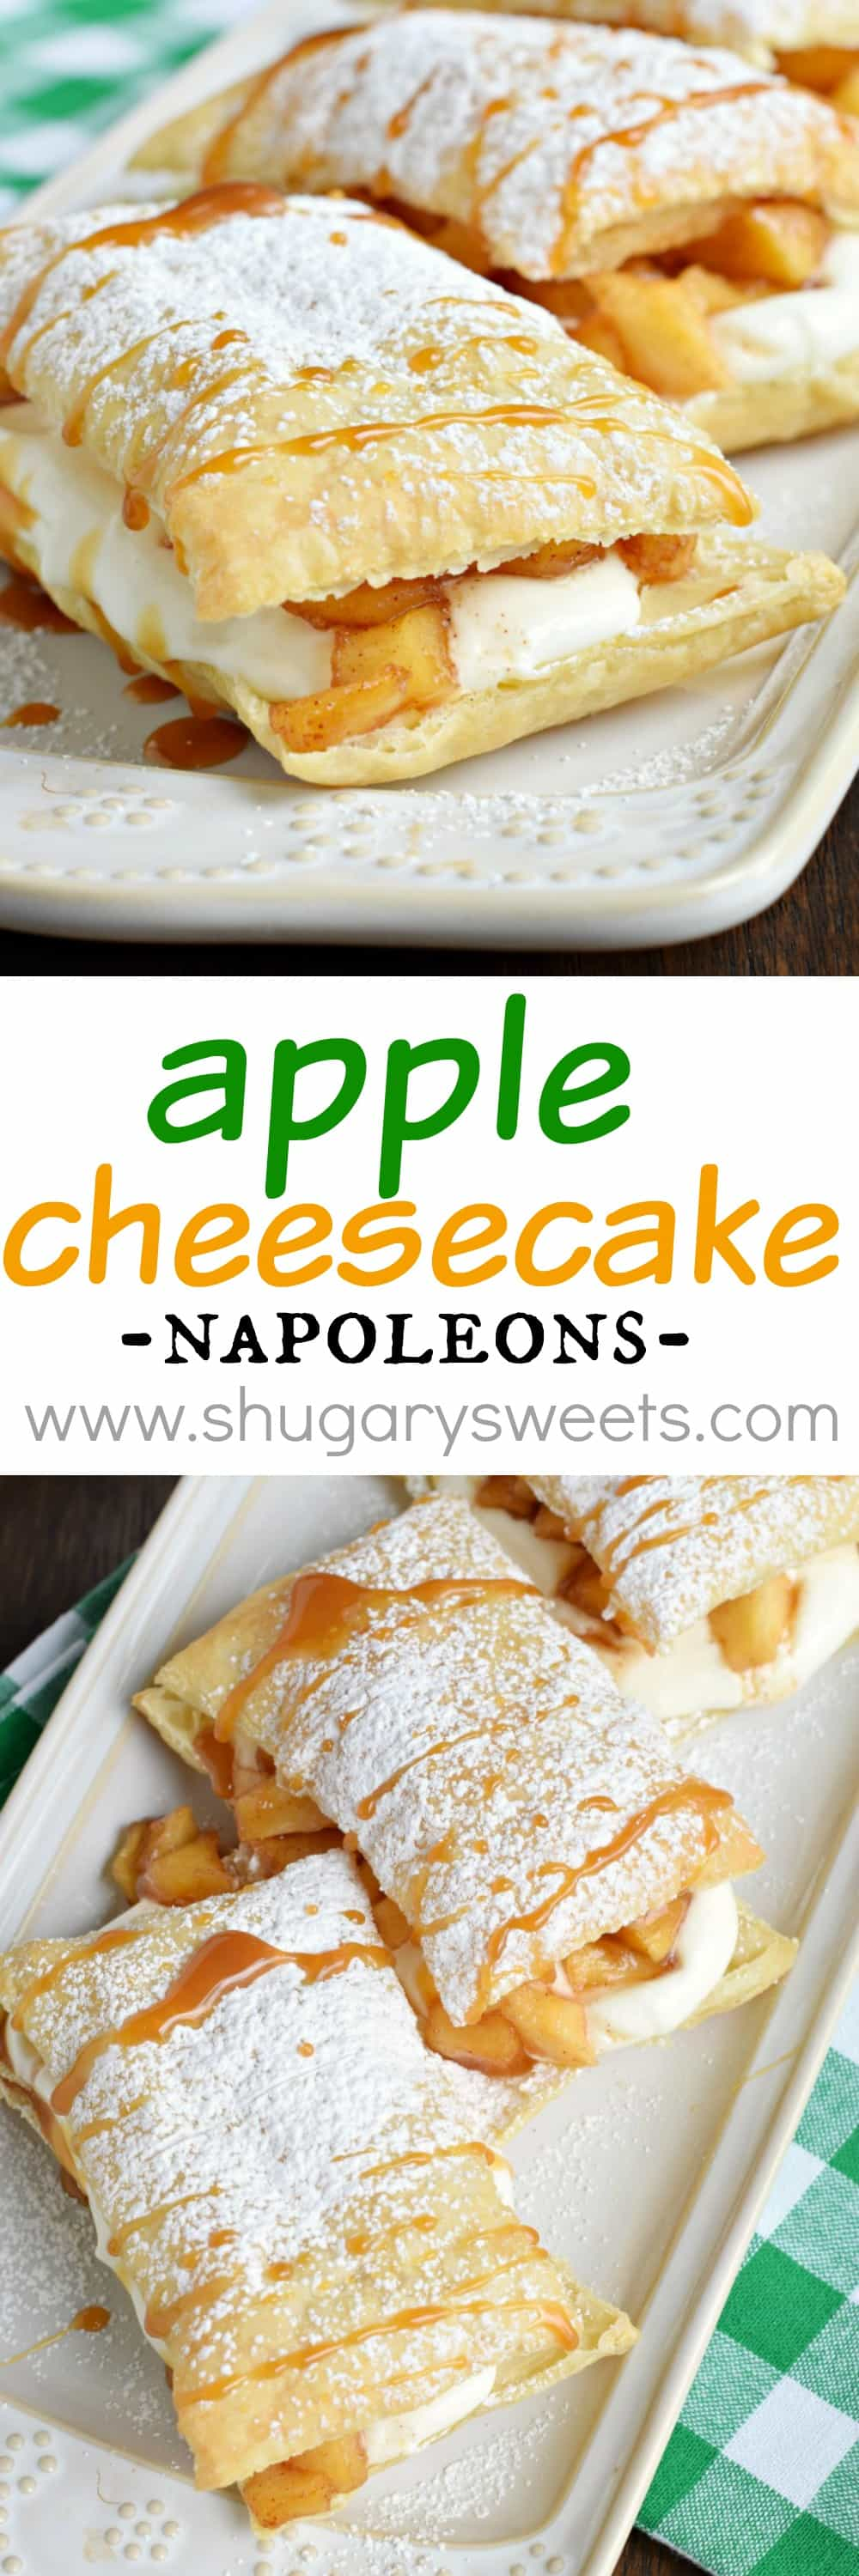 Caramel Apple Cheesecake Napoleons: a delicious, quick comfort food ...